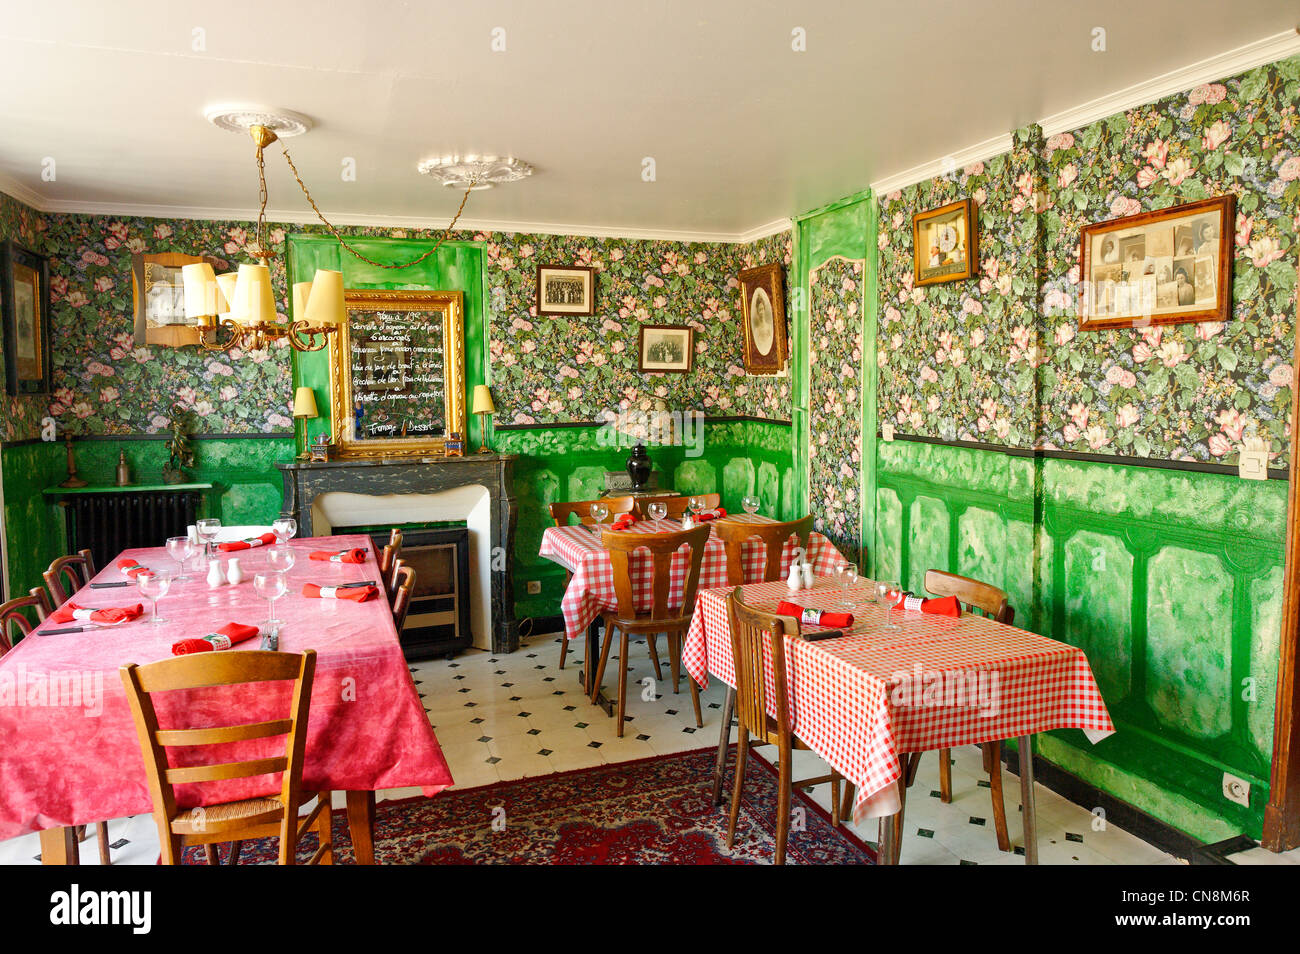 France, Meuse, Verdun, Chez Mamie, dining room with Vichy water tables and Rococo wallpaper - Stock Image